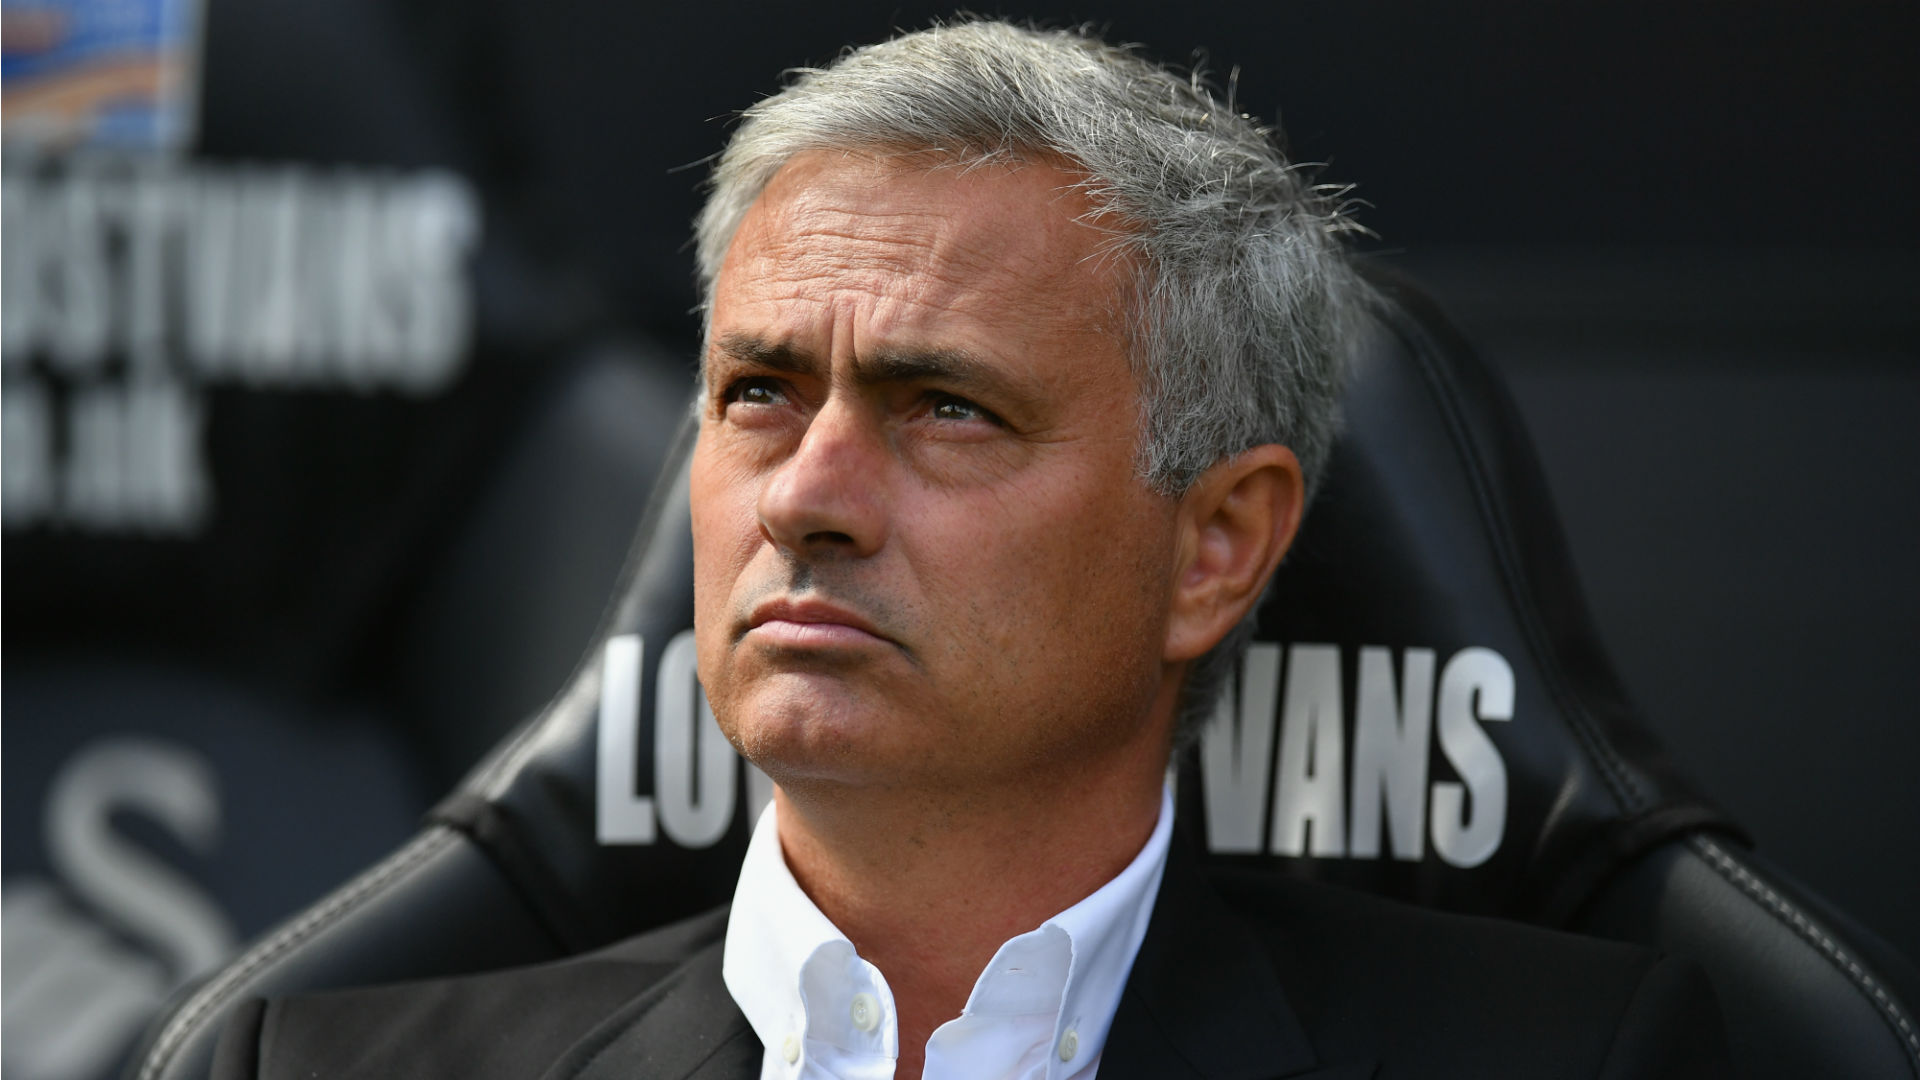 Jose Mourinho praises 'confident' Manchester United after win at Swansea